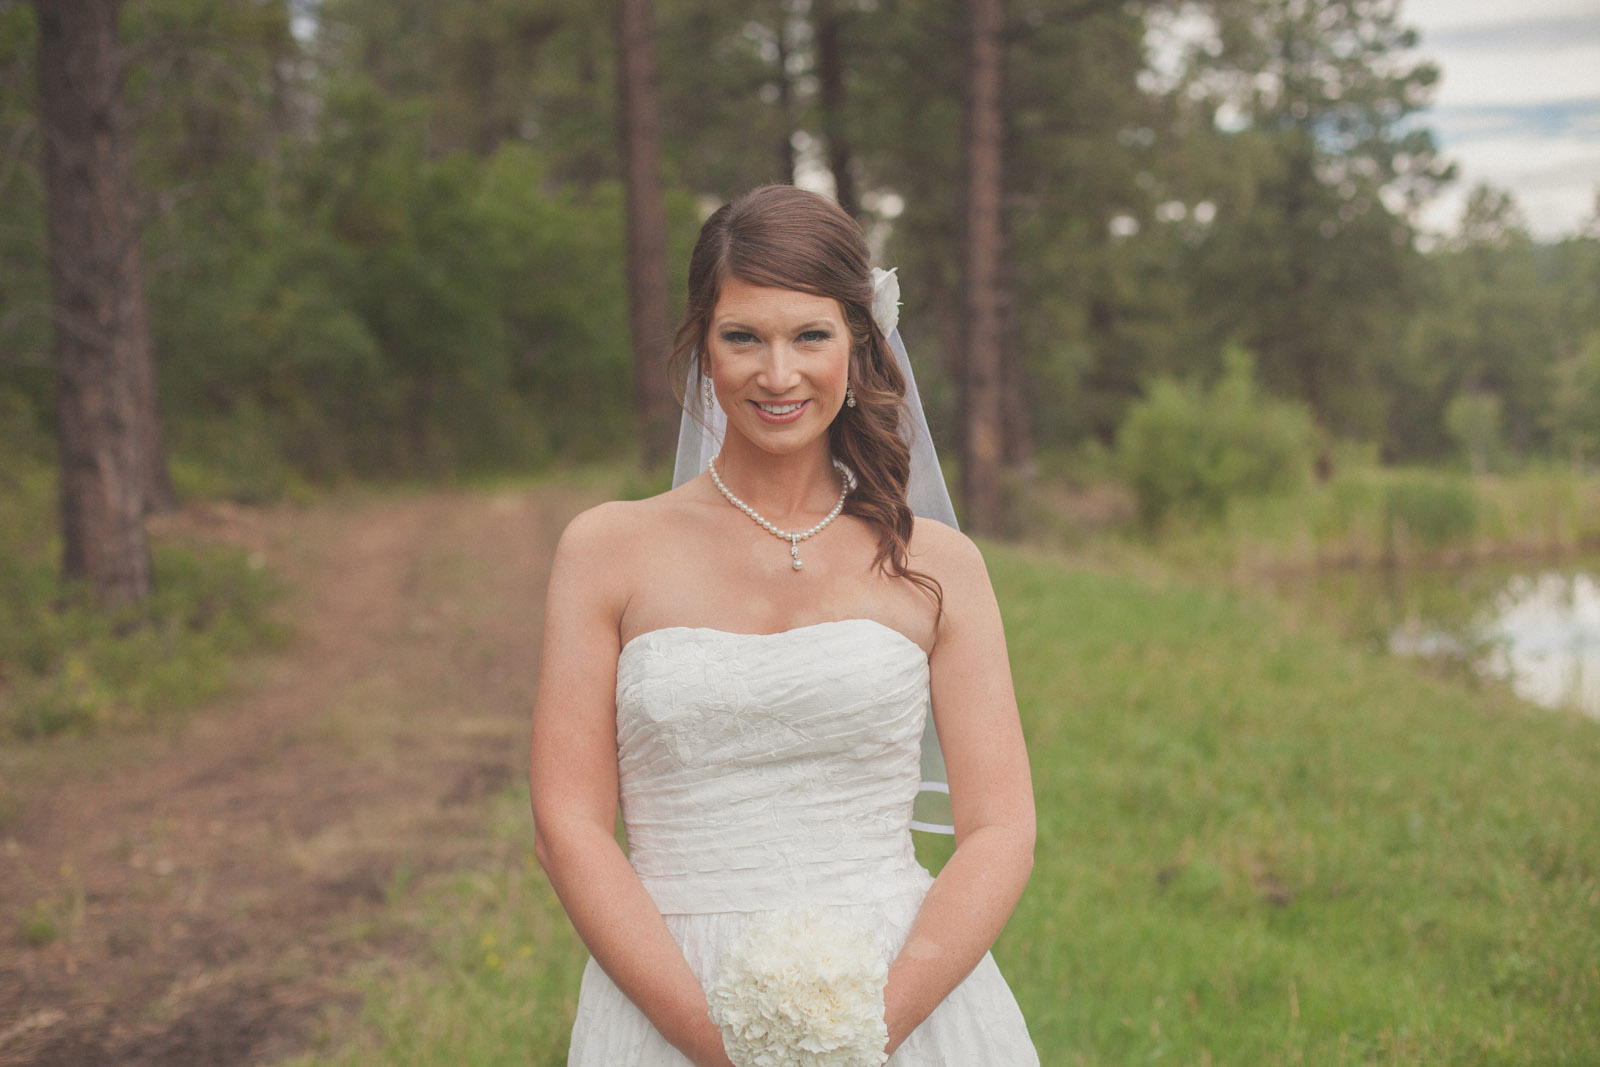 lake bokeh trees groom bride wedding cabin woods forest pictures photos dress photography portraits first look firstlook reveal happy farmington aztec durango mancos co nm